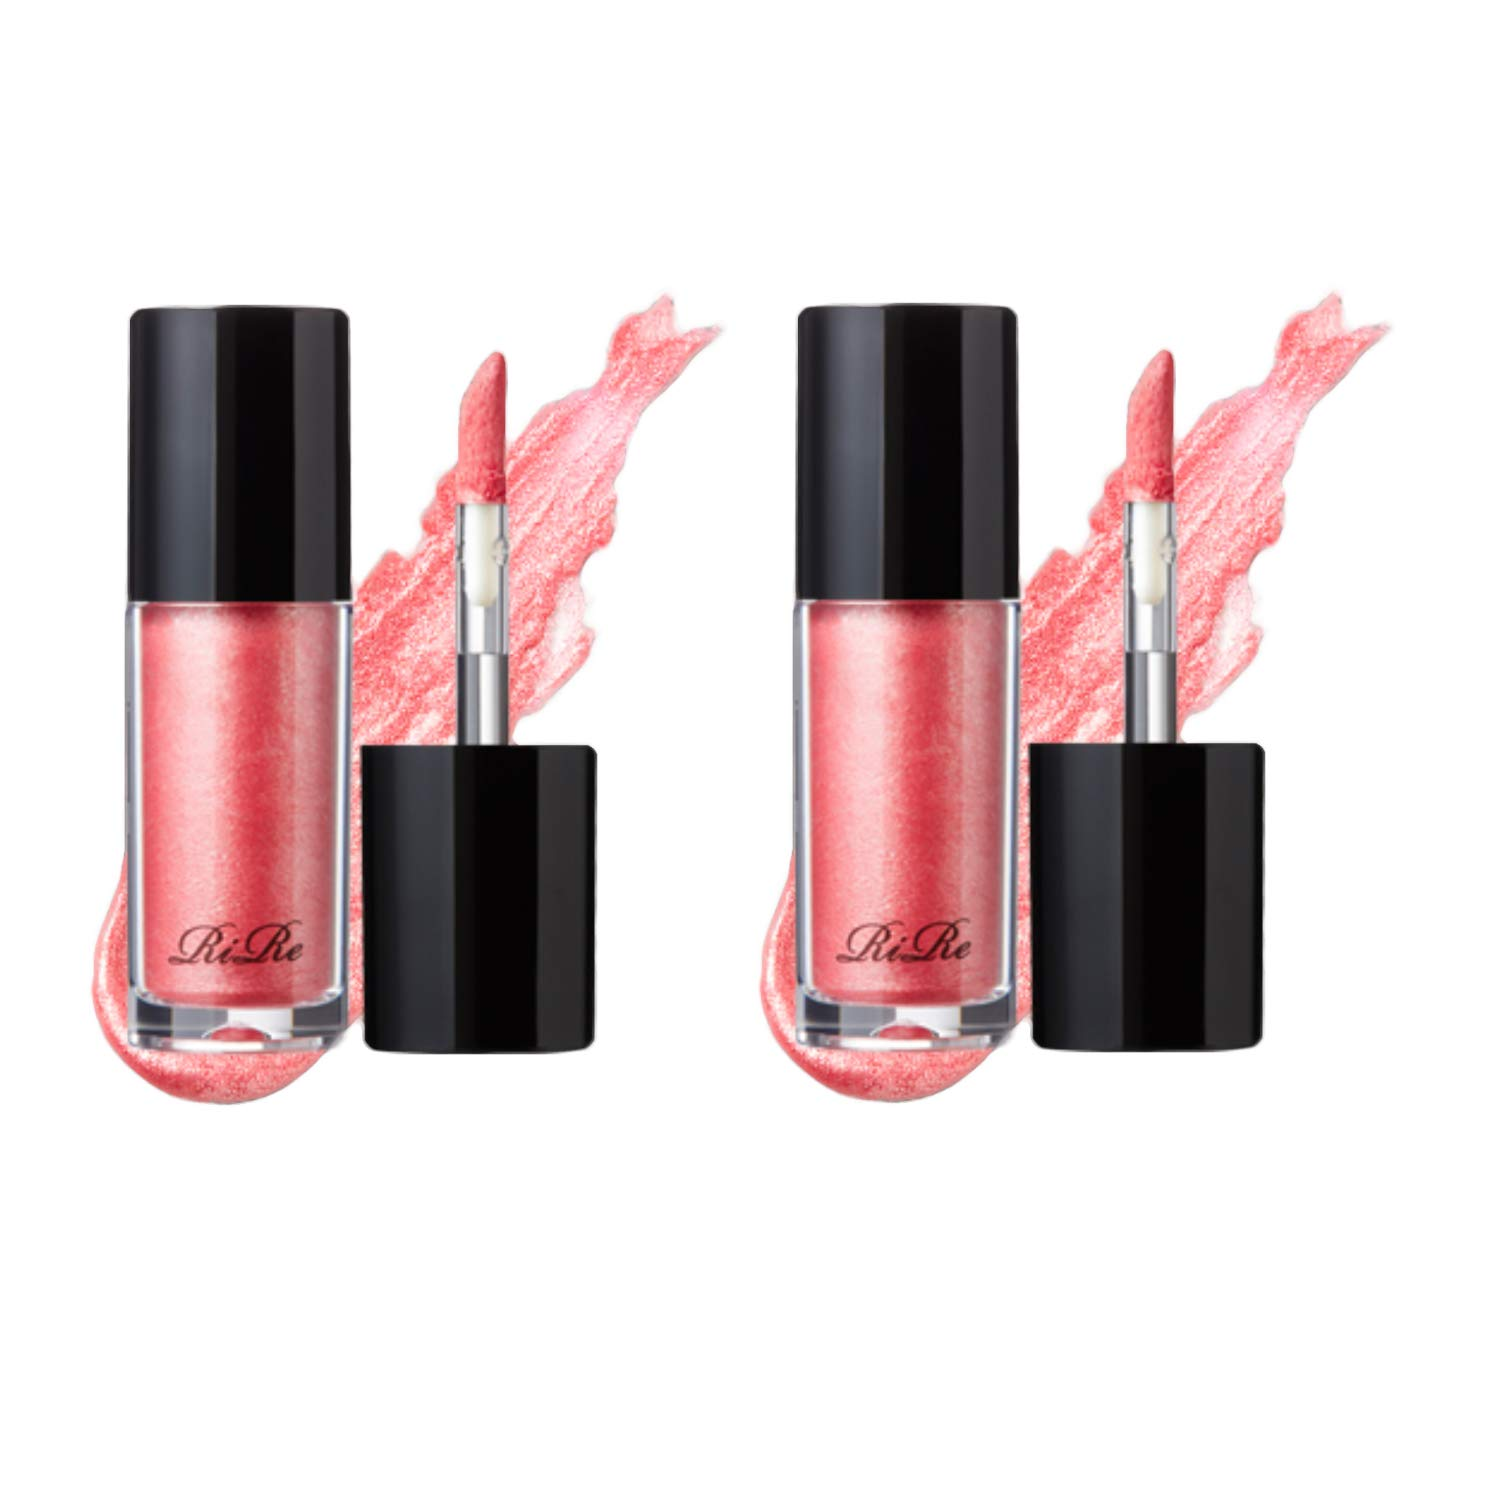 RiRe Luxe Liquid Shadow 5g \/ 0.17oz Pack of 2 (Pink dress)